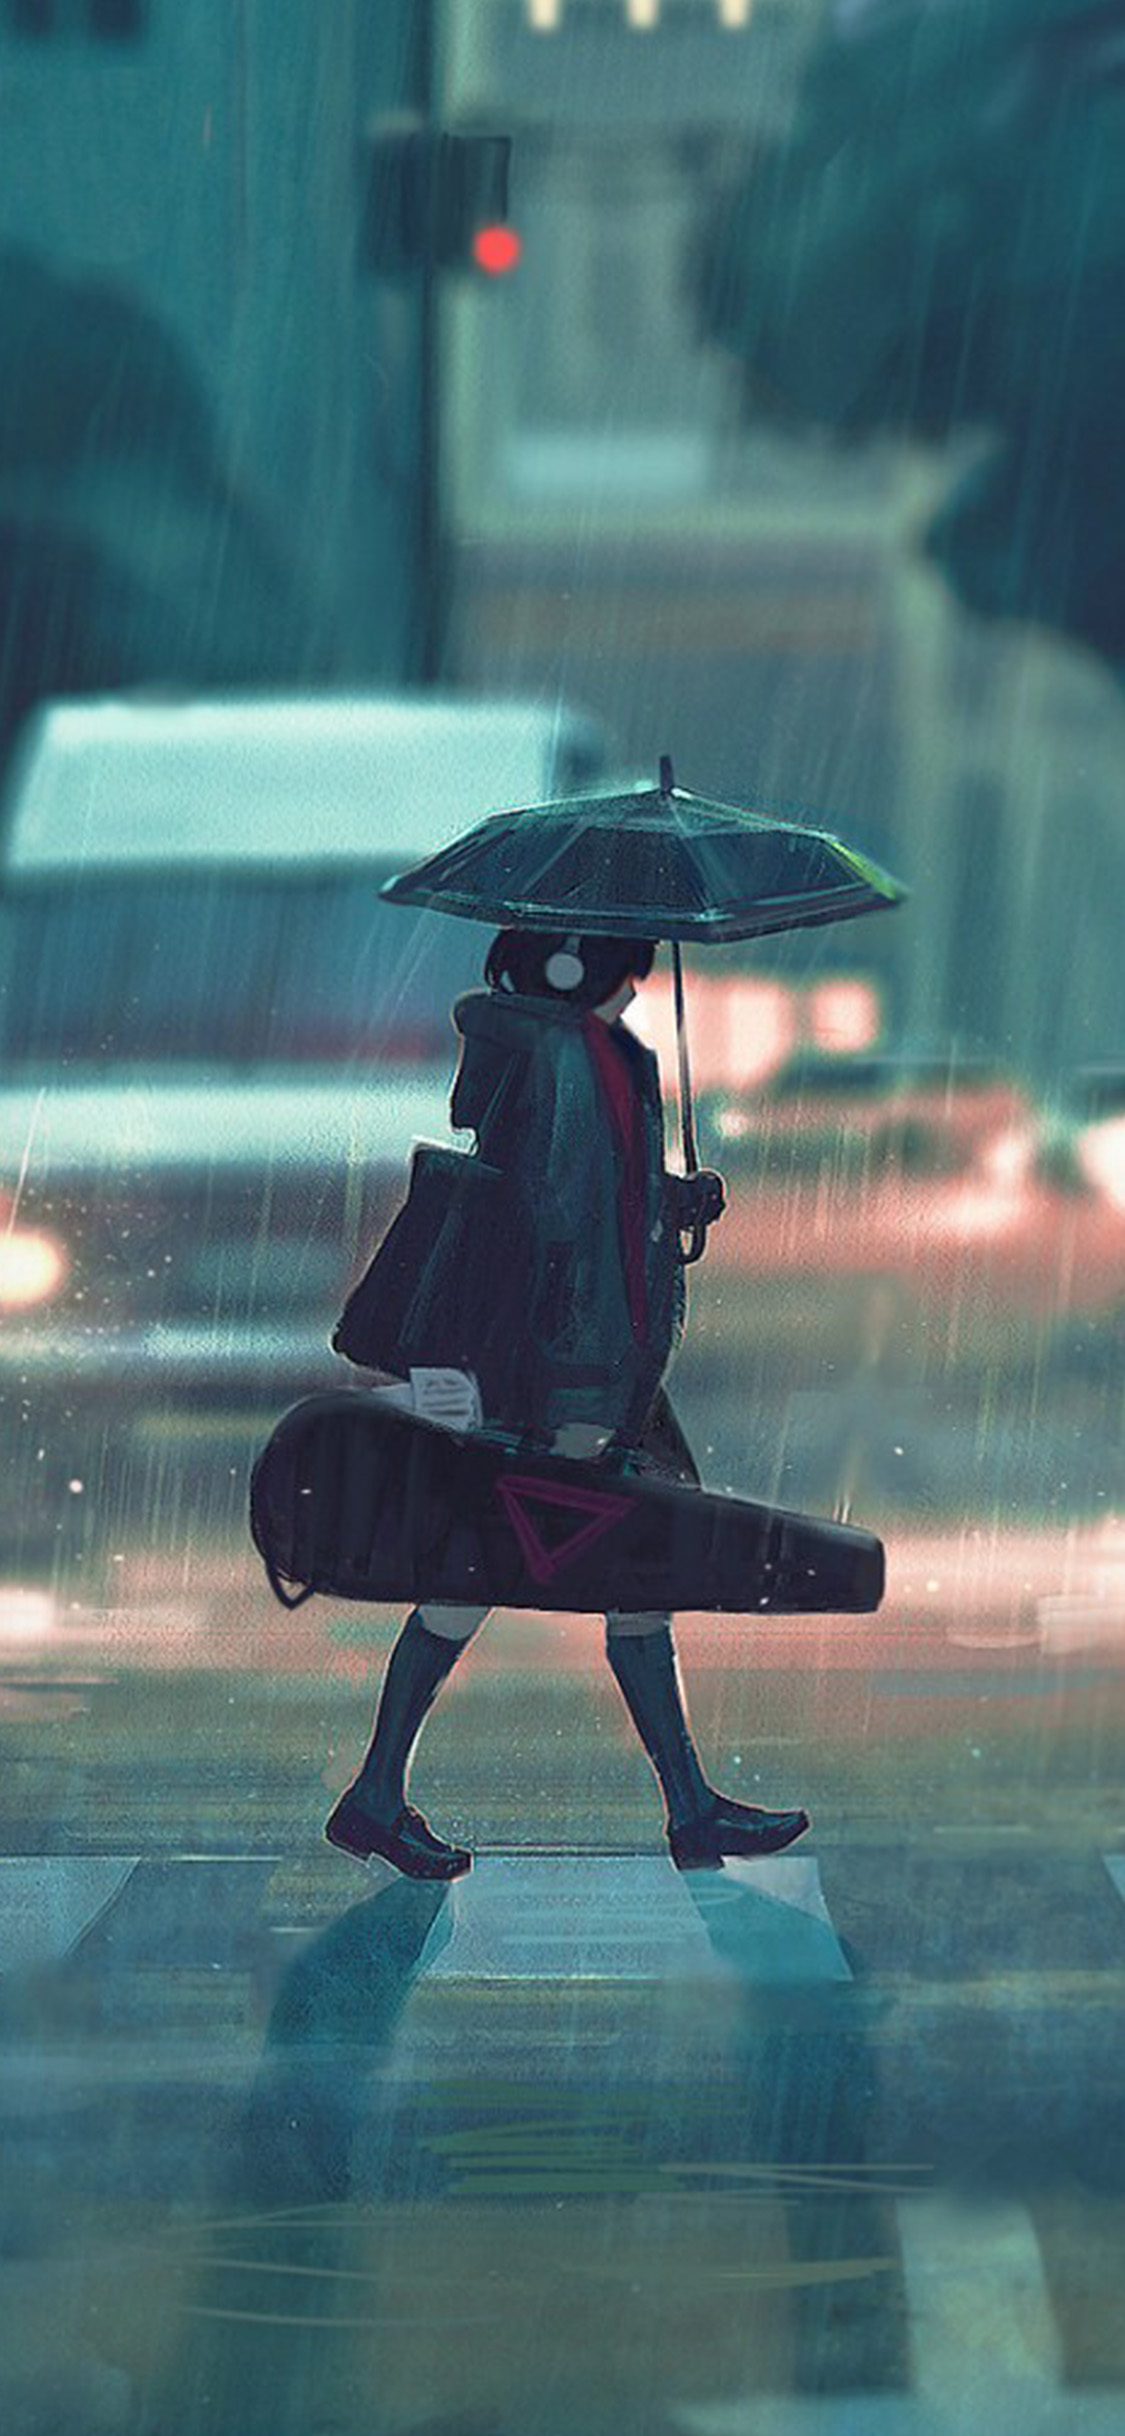 iPhonexpapers.com-Apple-iPhone-wallpaper-bc89-rainy-day-anime-paint-girl-art-illustration